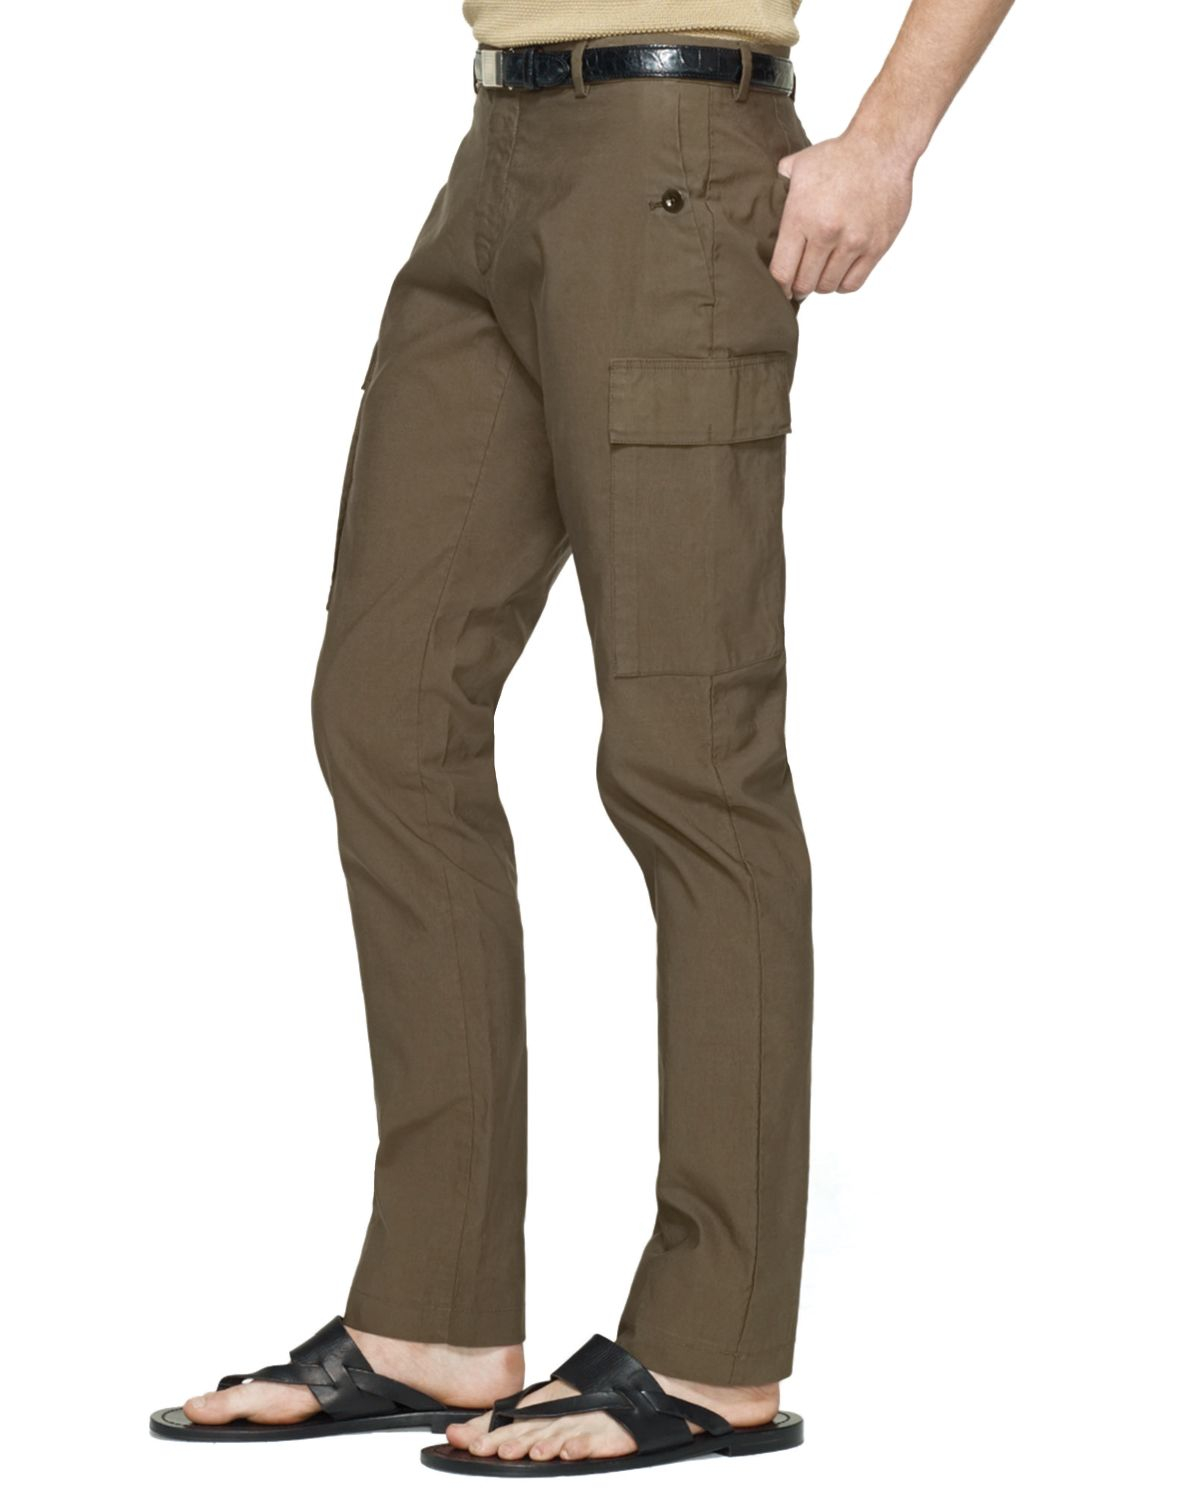 Shop goodforexbinar.cf for men's pants, men's cargo pants and tapered leg styles for men. And enjoy FREE shipping and FREE returns on your orders!